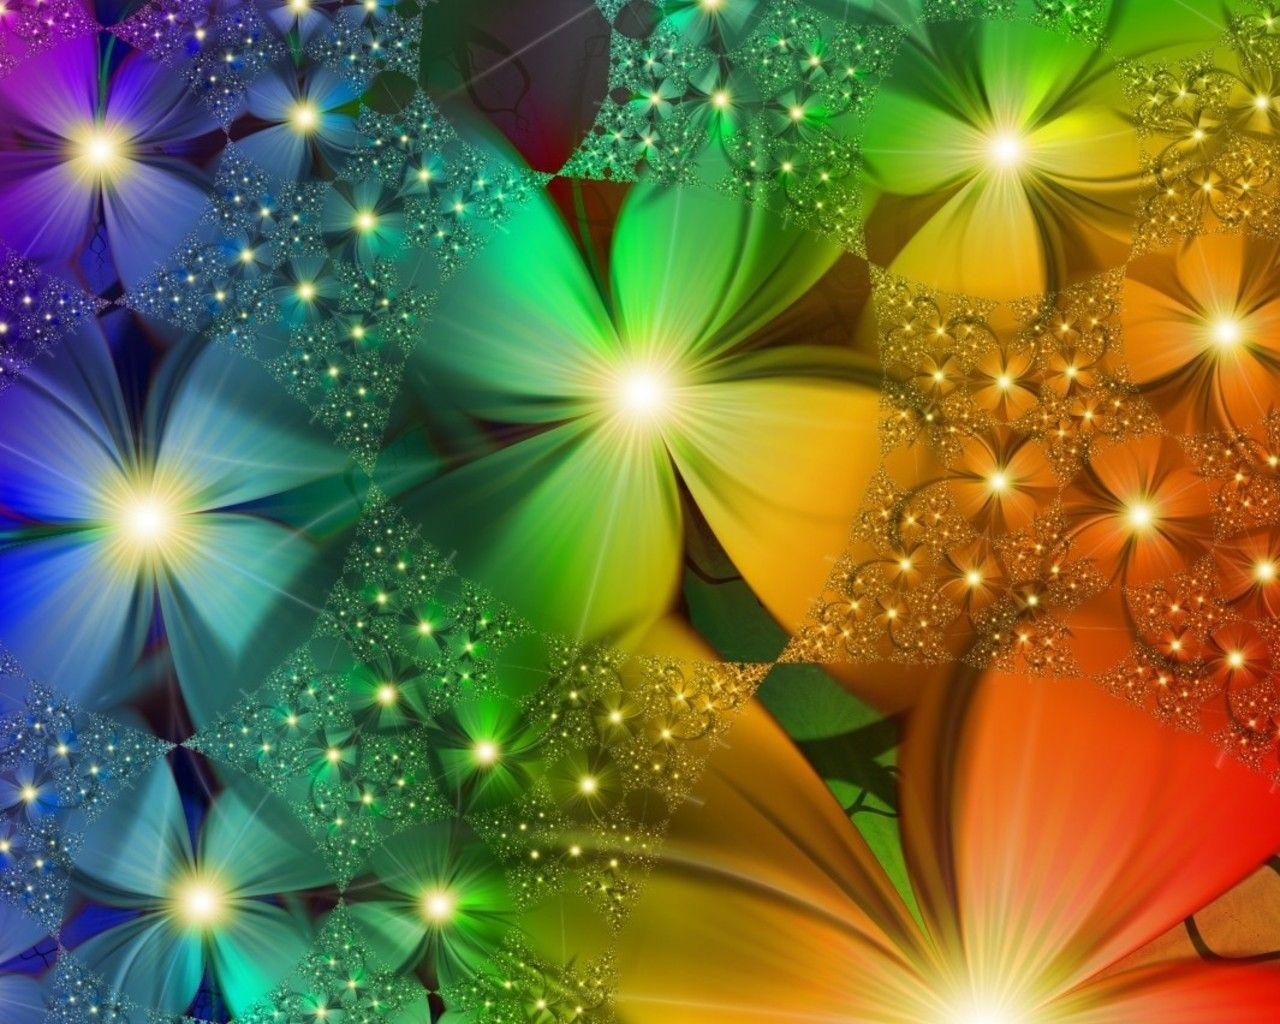 Cool Colorful Backgrounds - Wallpaper Cave - photo#21